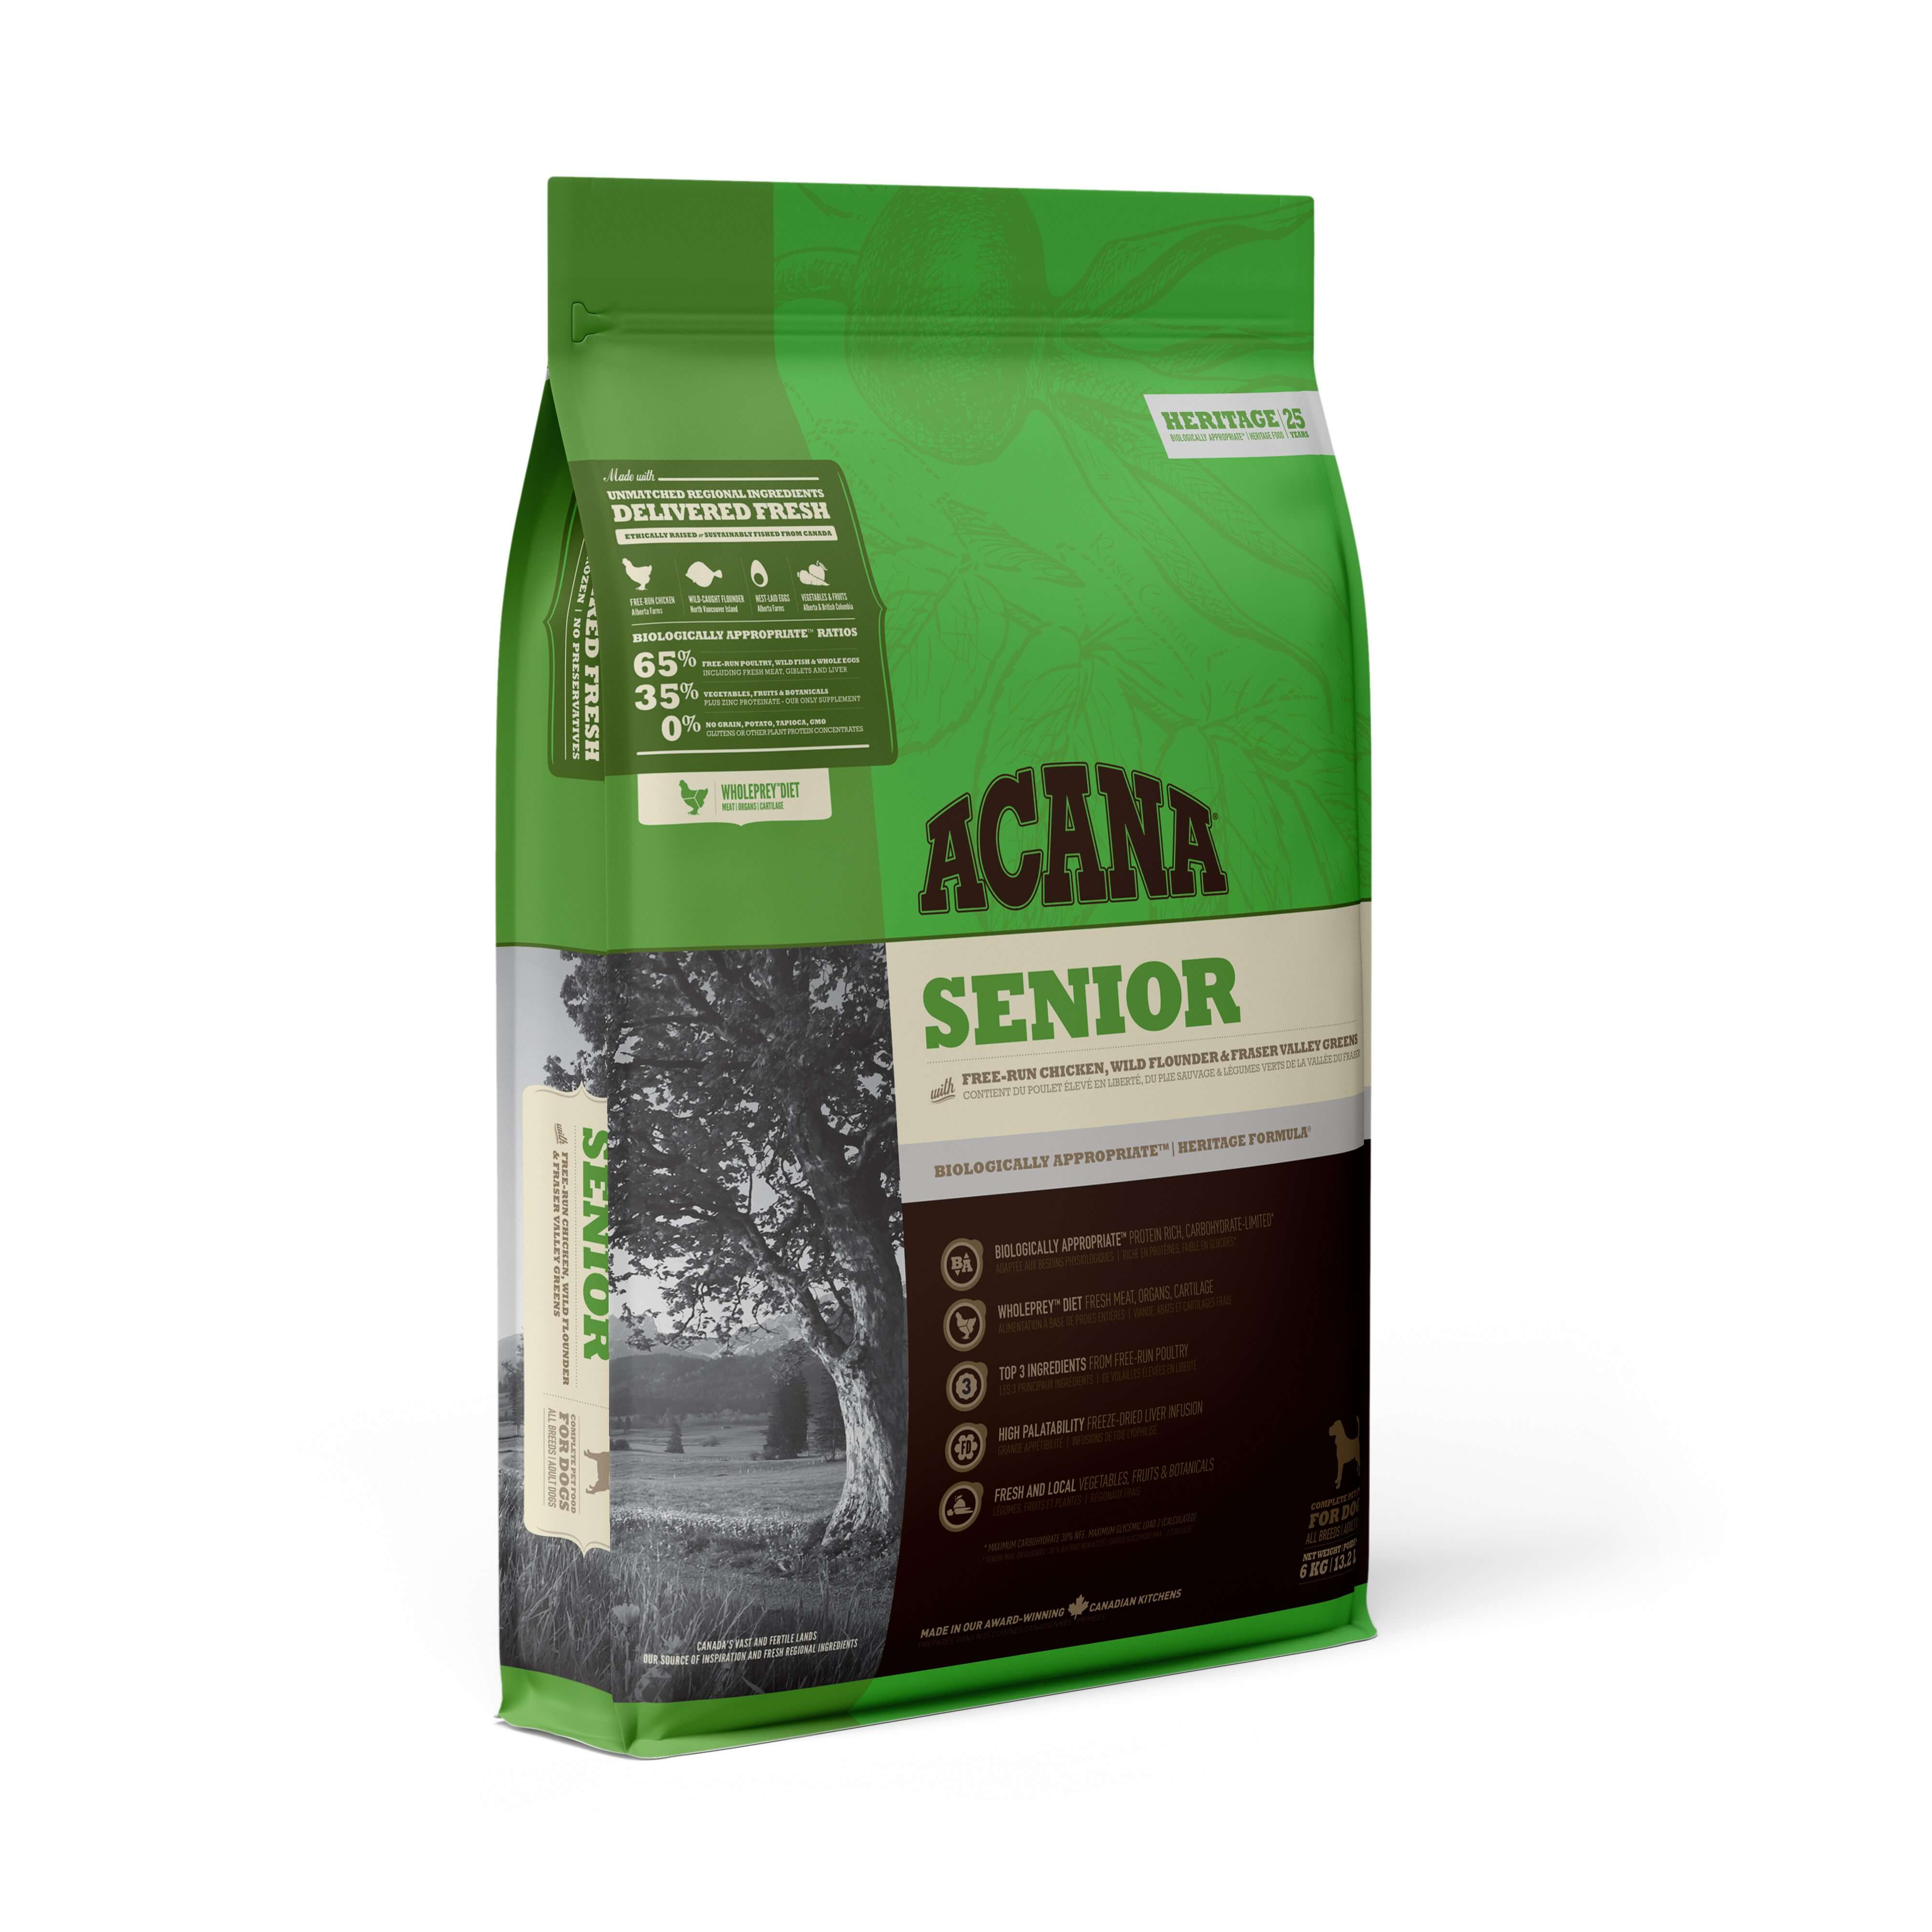 Acana Senior | 2kg - Click to enlarge picture.